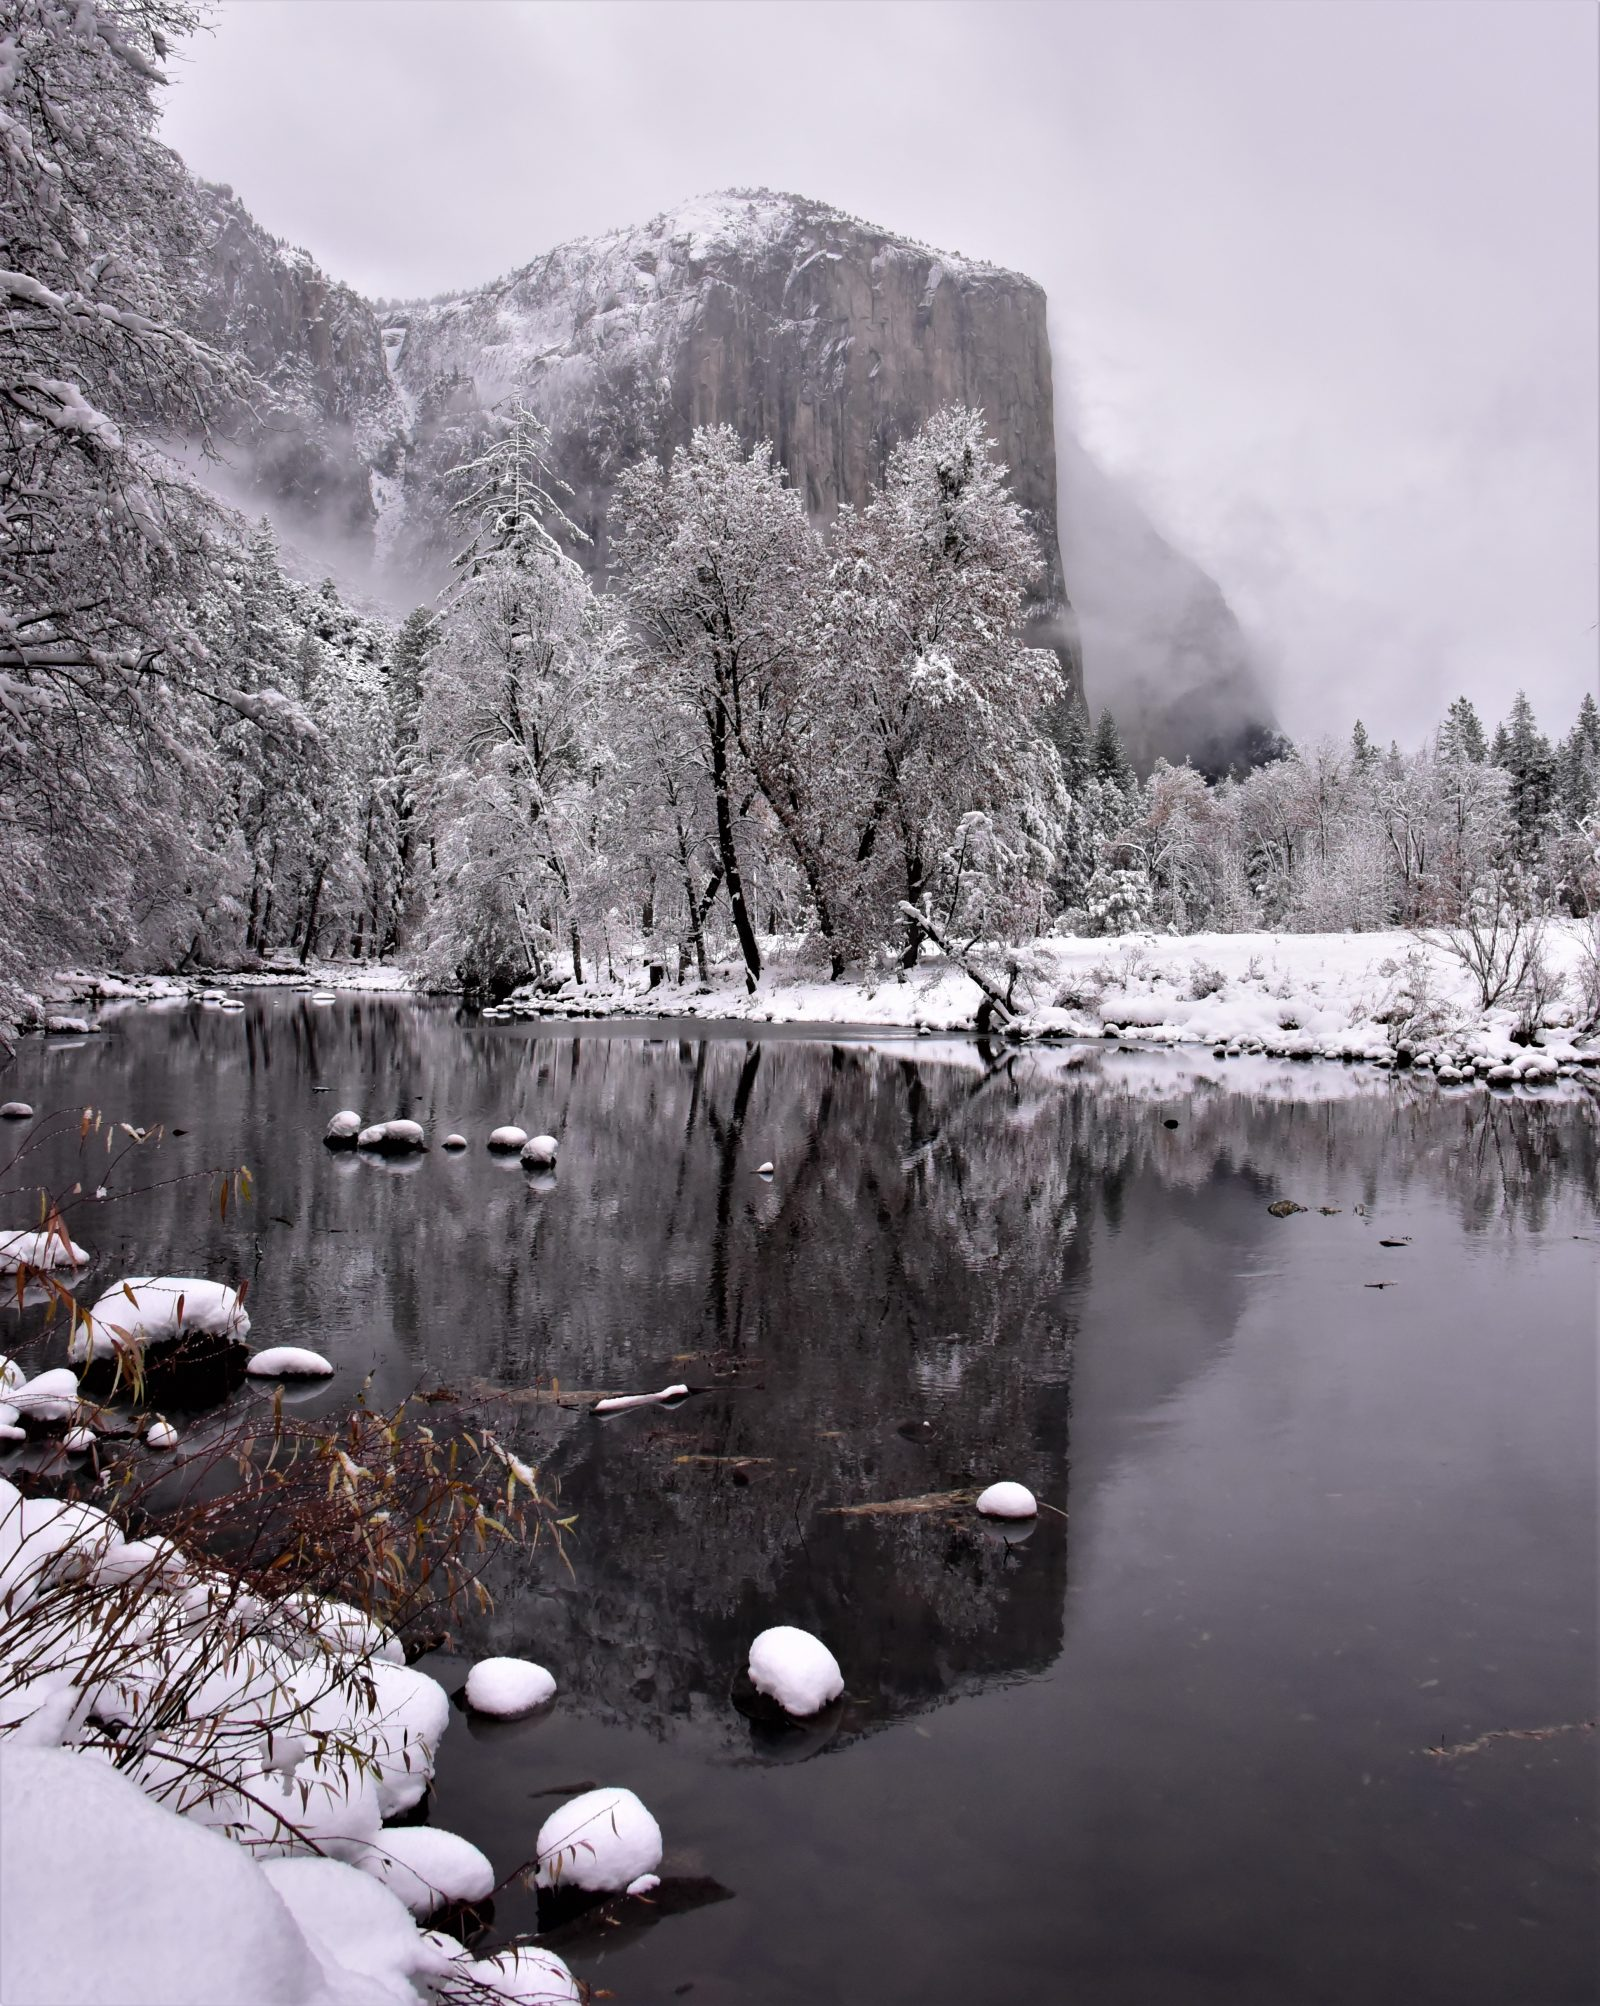 Snowfall at Yosemite